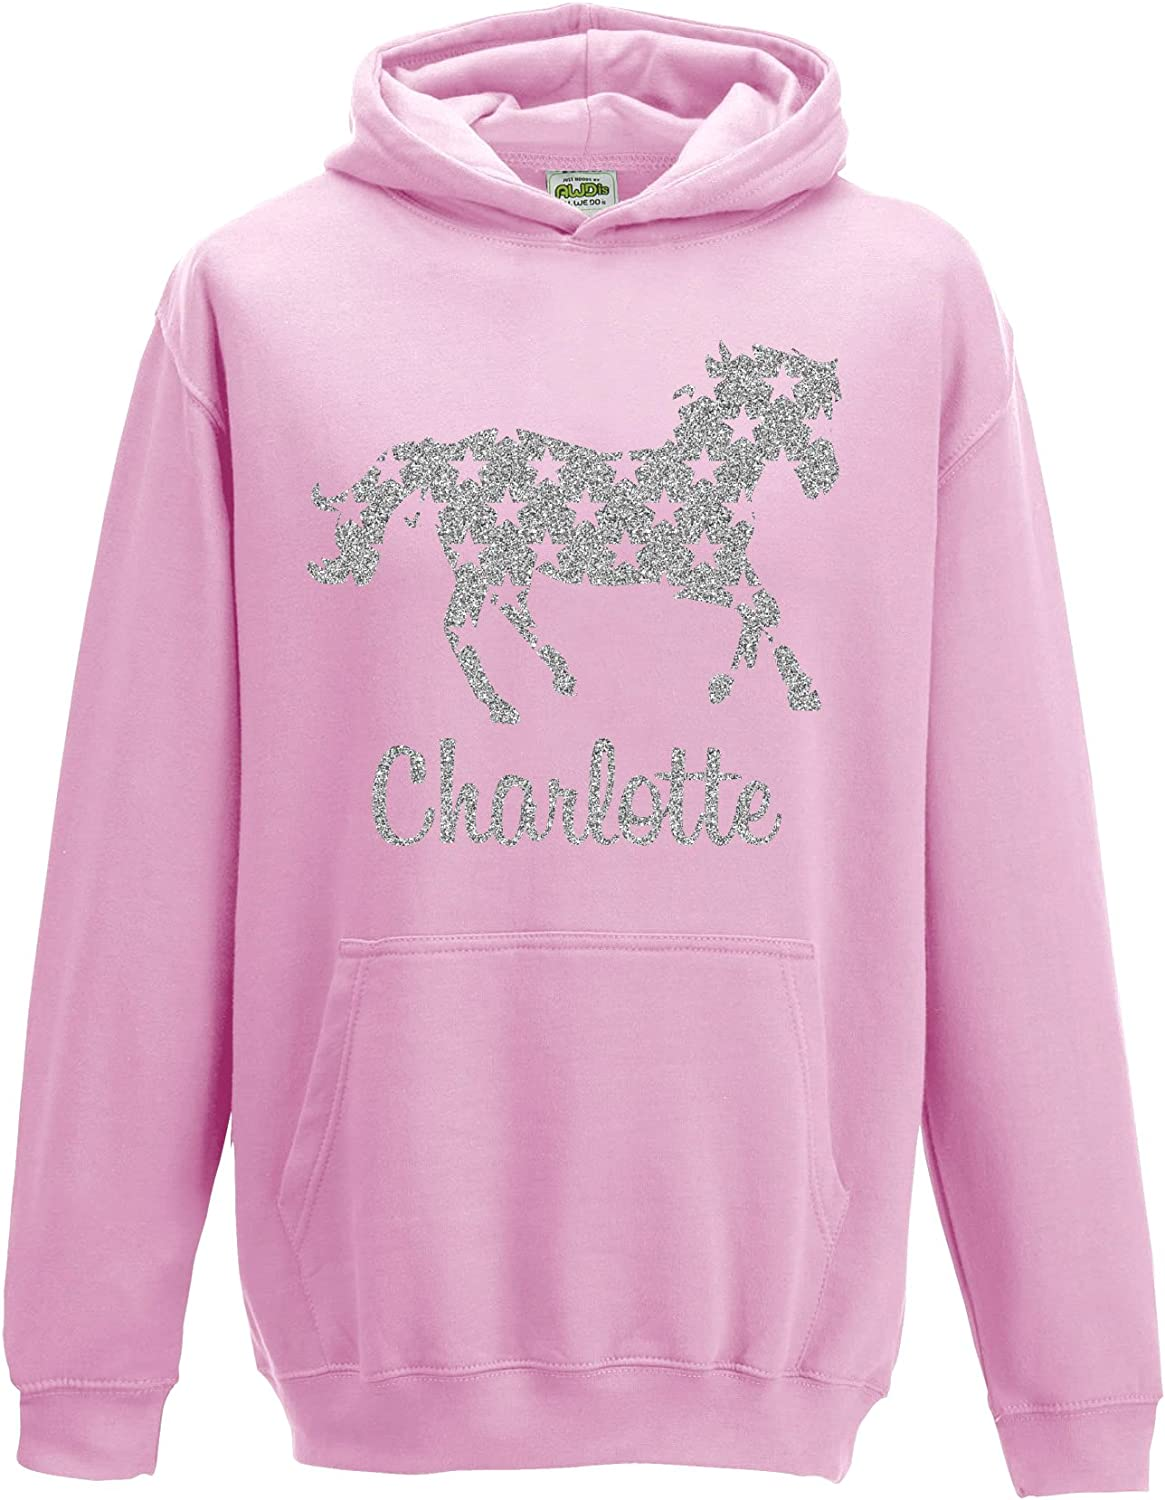 Personalised Horse Pony Riding Children/'s Hoodie Jacket Any Name Christmas Gift